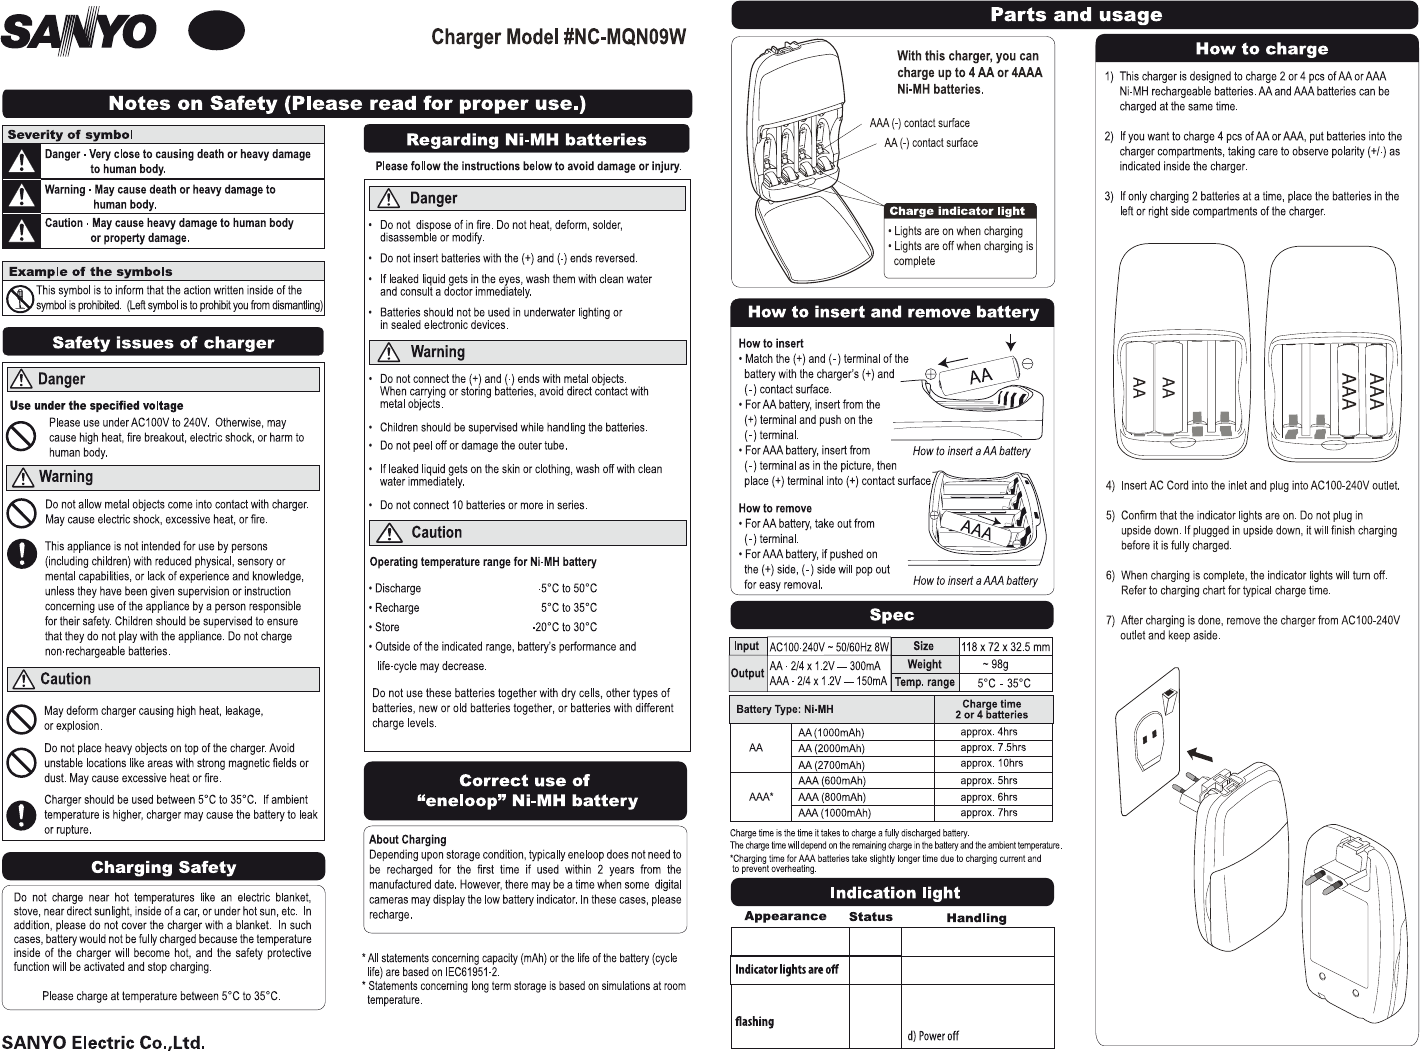 Sanyo Battery Charger #NC-MQN09W User Guide